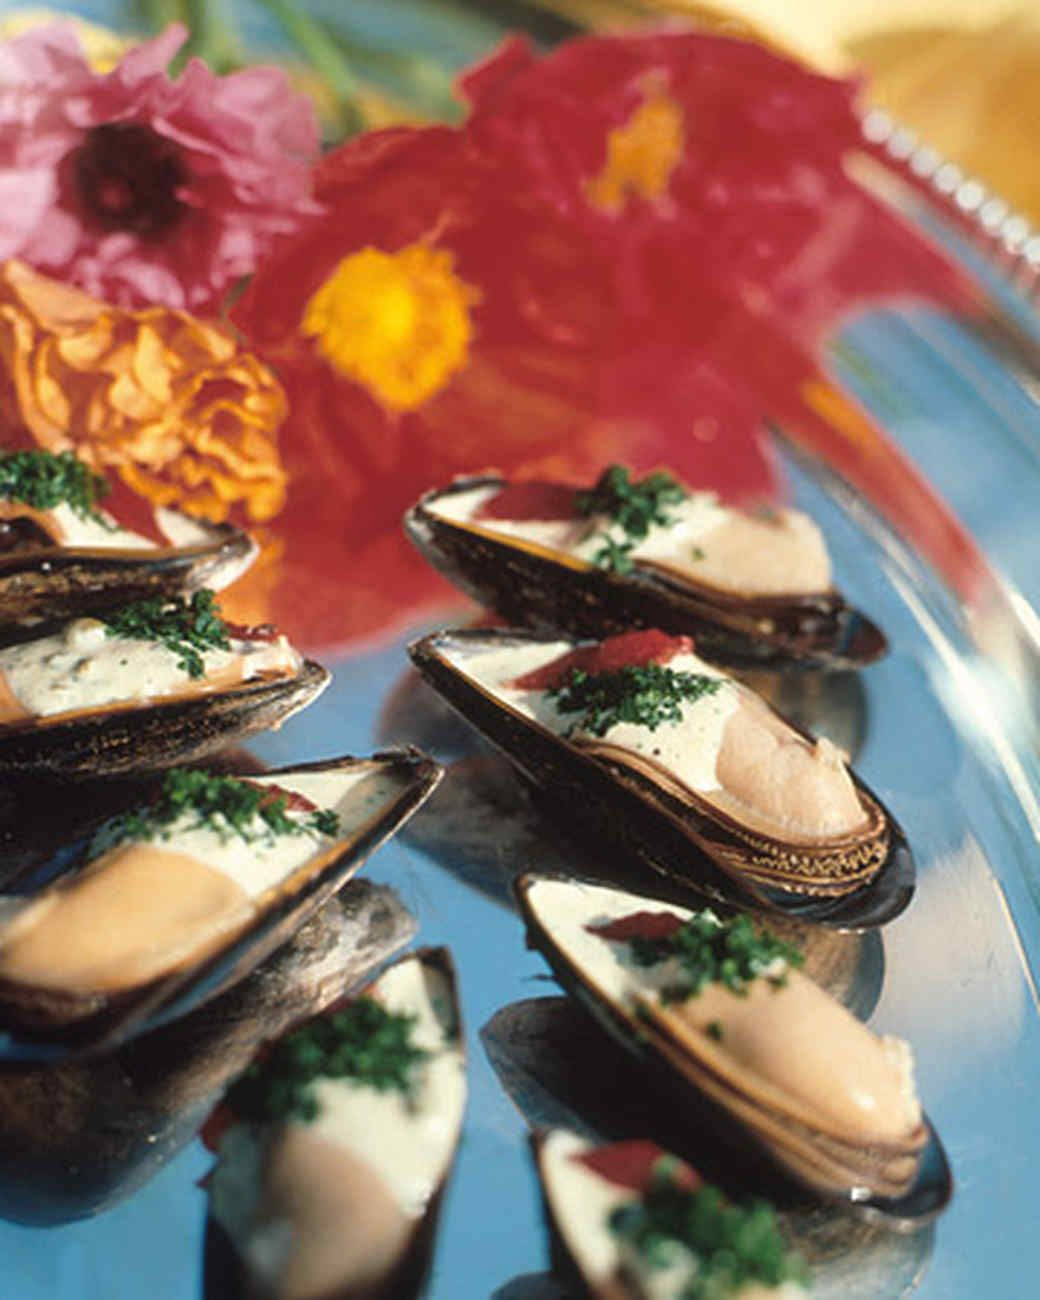 Use This Recipe When Making Our Mussels Remoulade Or Other Shellfish Dishes Mussels Seafood Dinner Recipes Remoulade Sauce